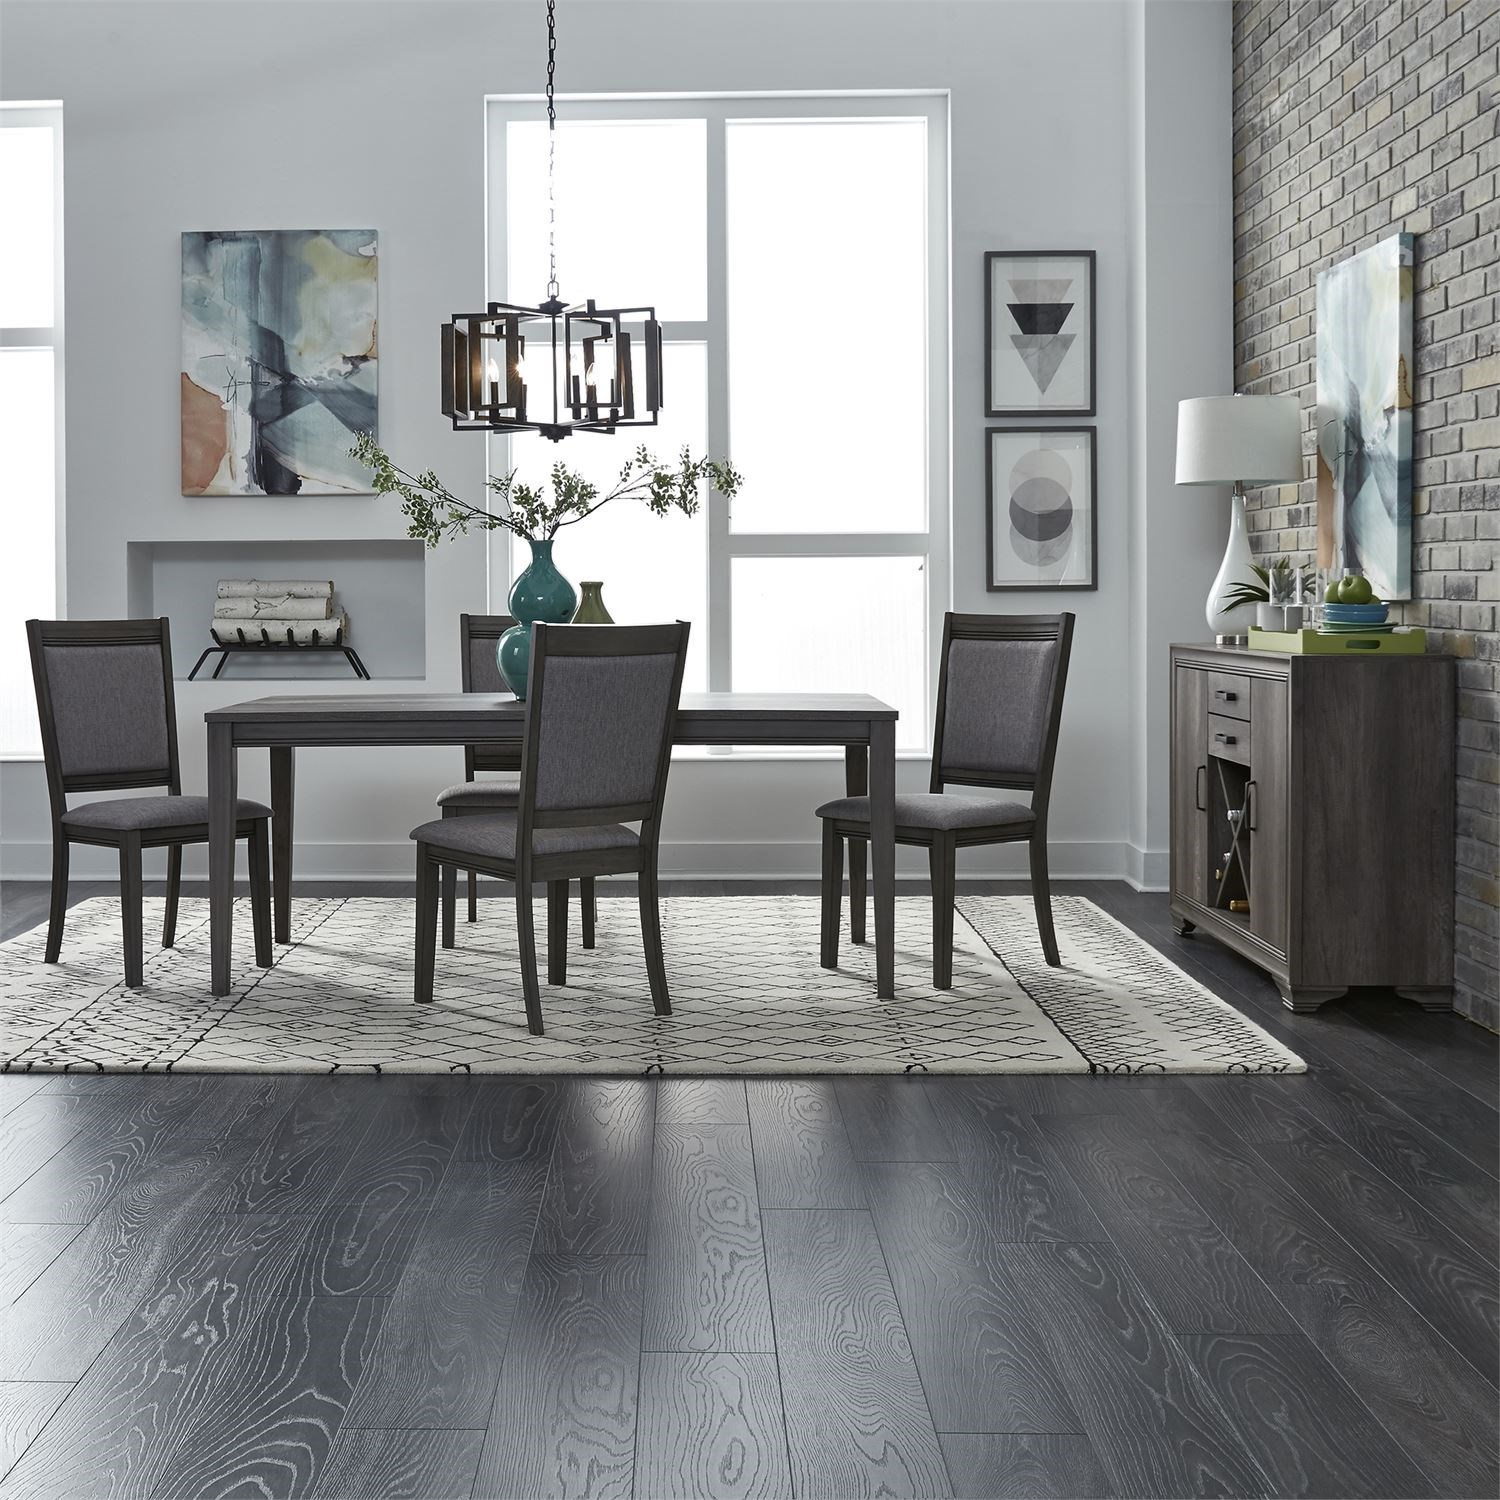 Liberty Dining Room Furniture: Liberty Furniture Tanners Creek Dining Room Group